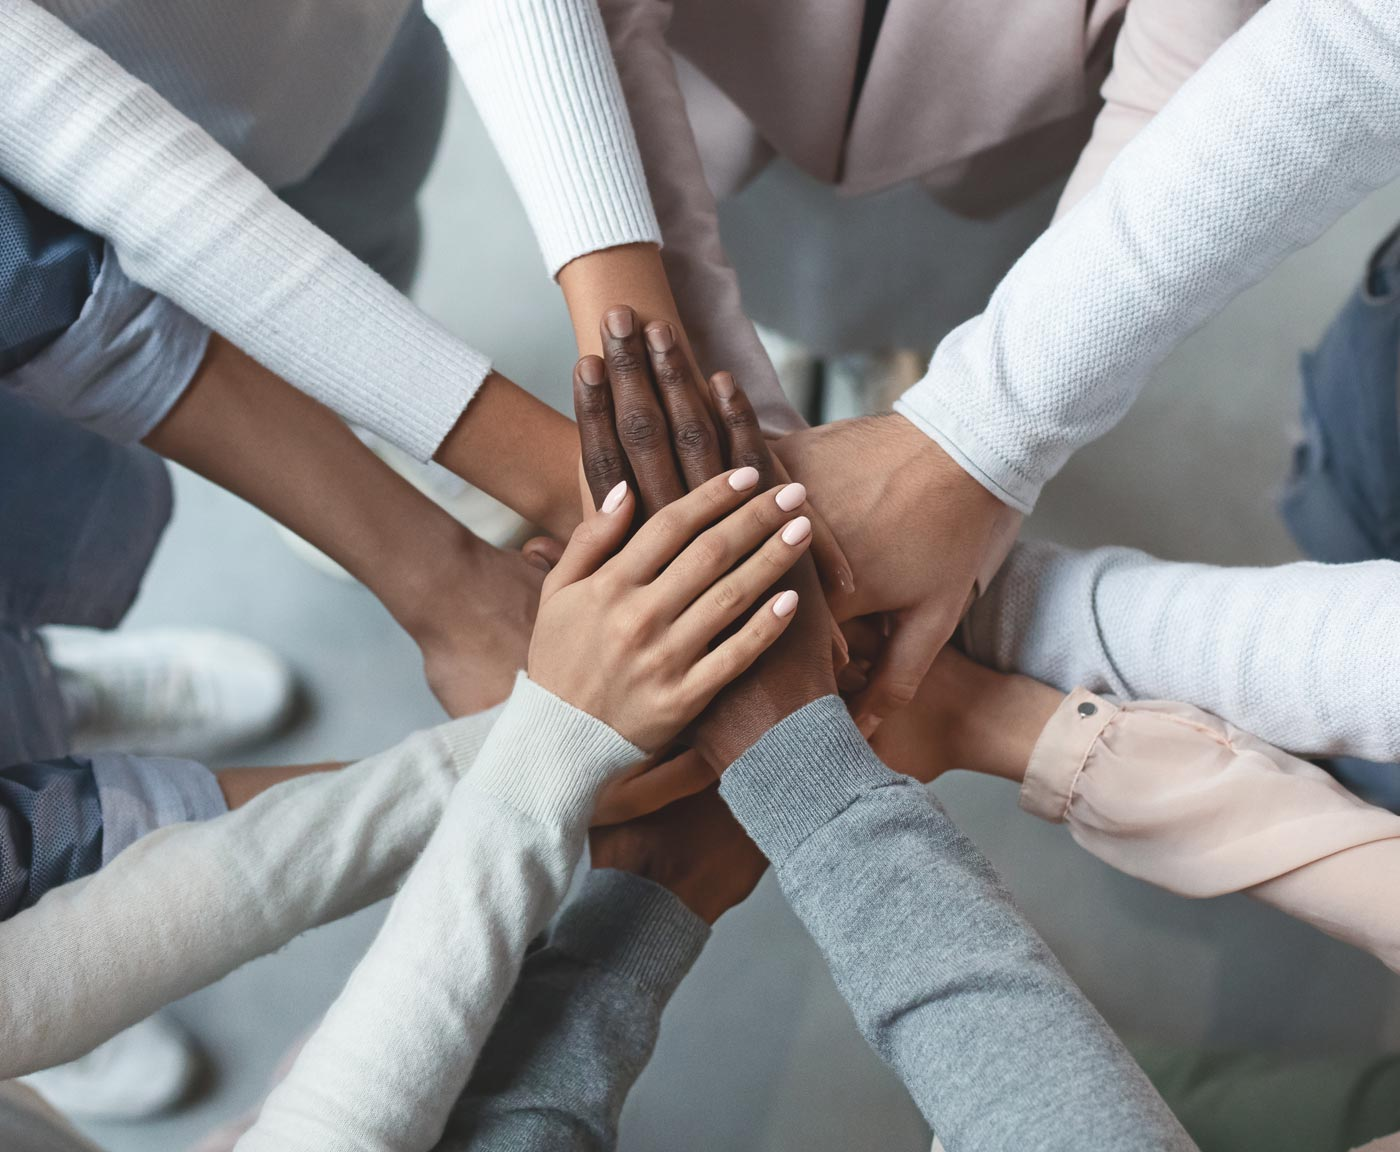 A close up of a team showing unity with putting their hands together on top of each other